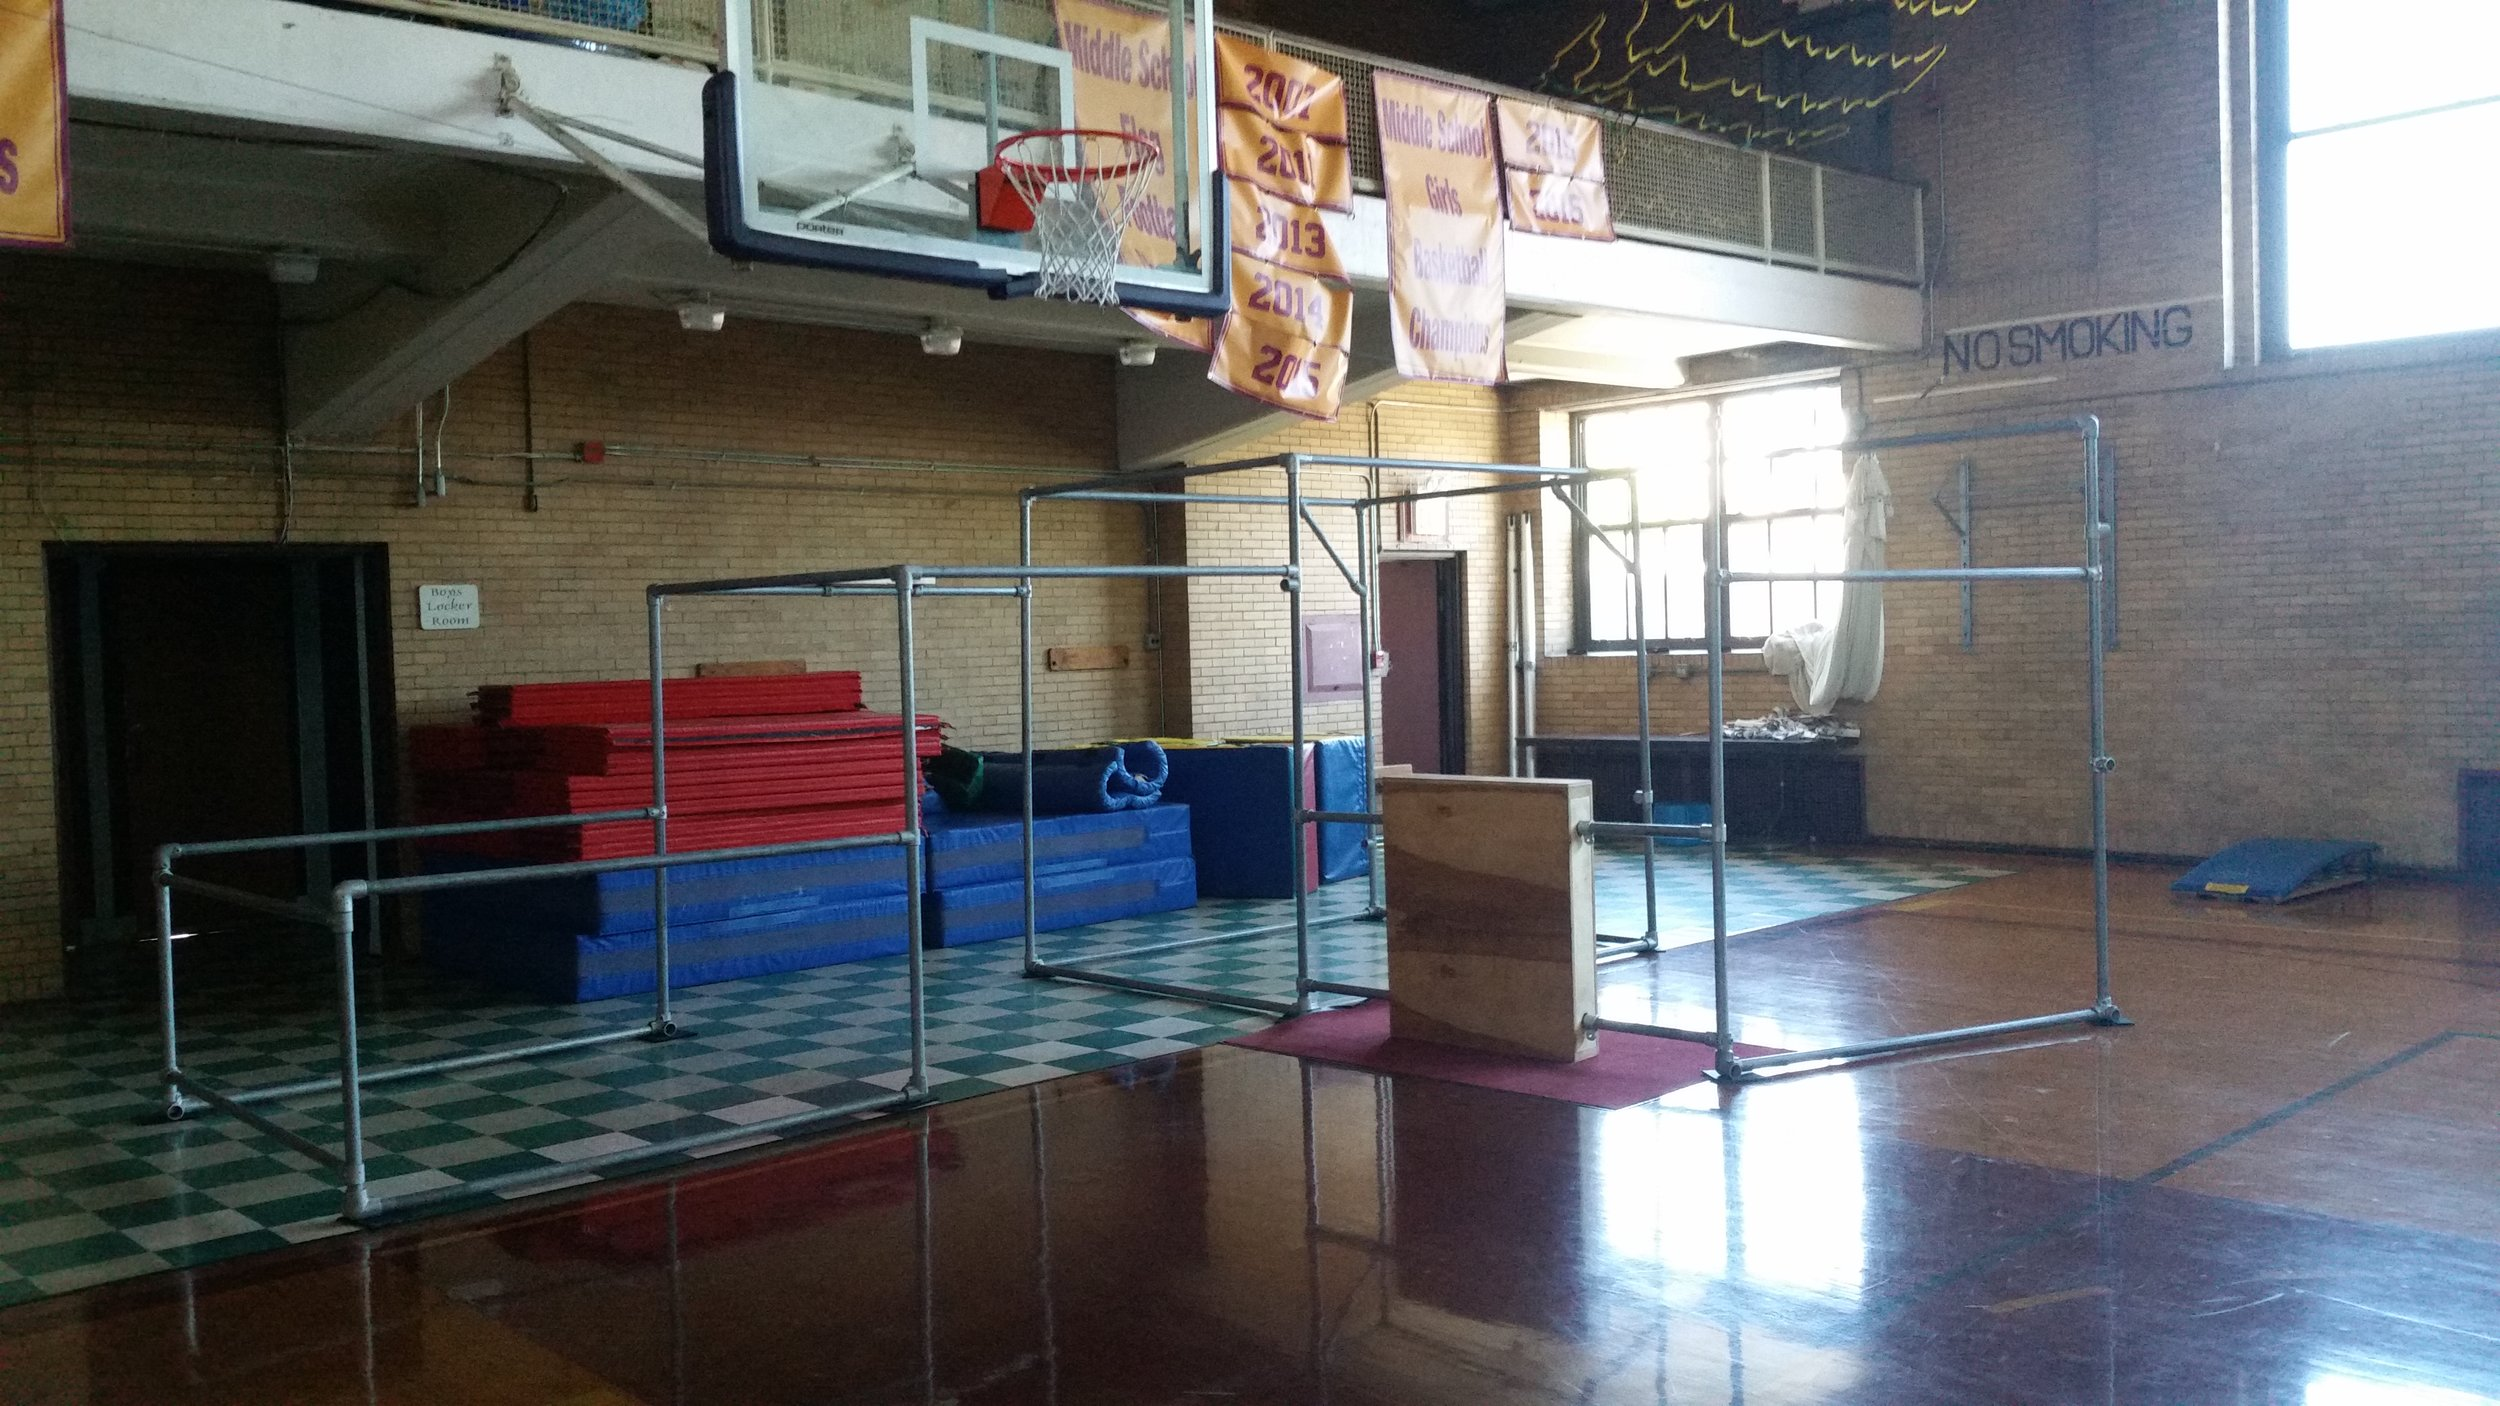 One of our temporary setups at Chicago Waldorf School. CWS has Parkour as a real class at their school, all year round! All the high school students take it and many of the middle school and grade school classes get to experience it once in a while, too.